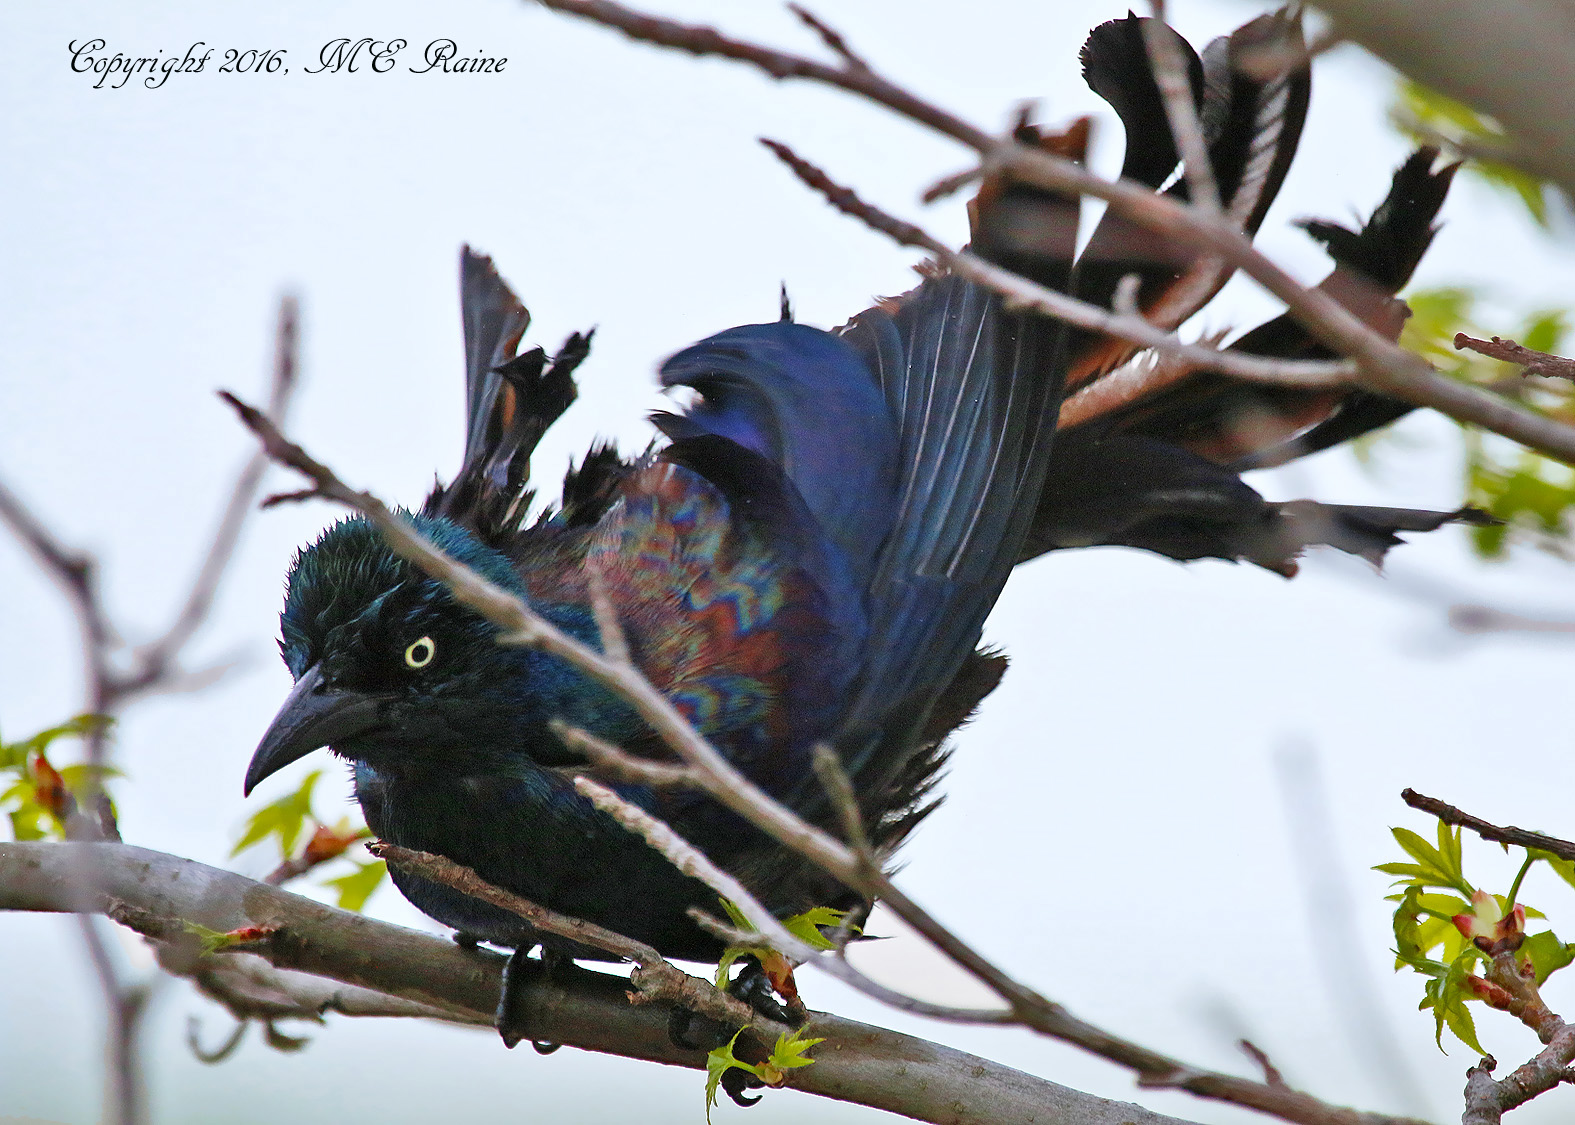 Grackle Common 009b1f MCM Mdwlnds NJ Drying Off from Bath 042516 OK FLICKR